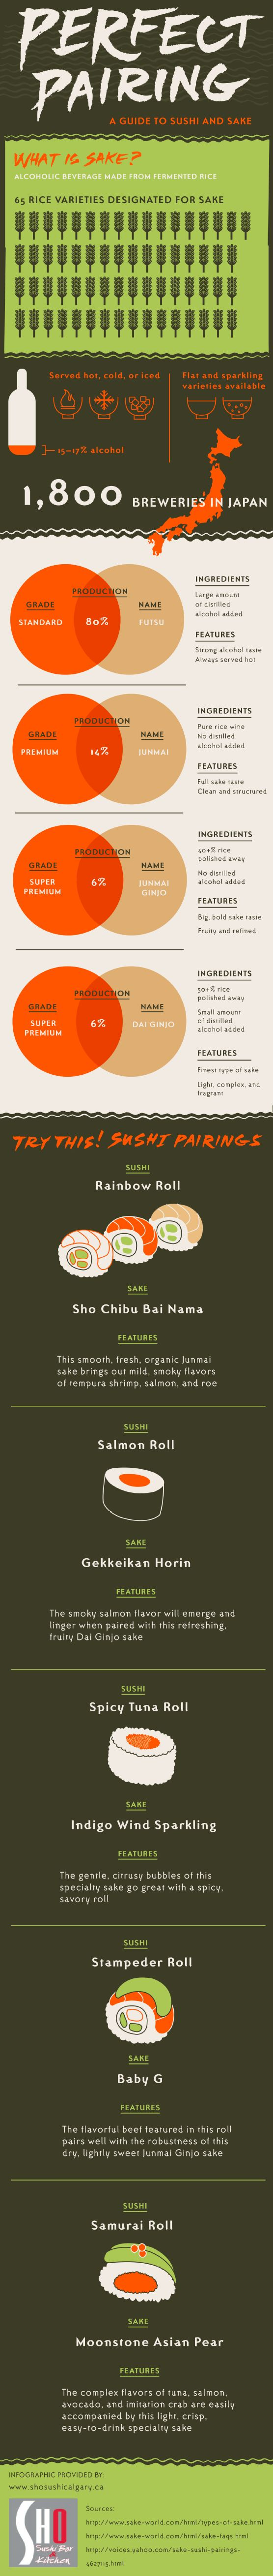 Sake and Sushi Pairings by finedininglovers #Infographic #Sake #Sushi